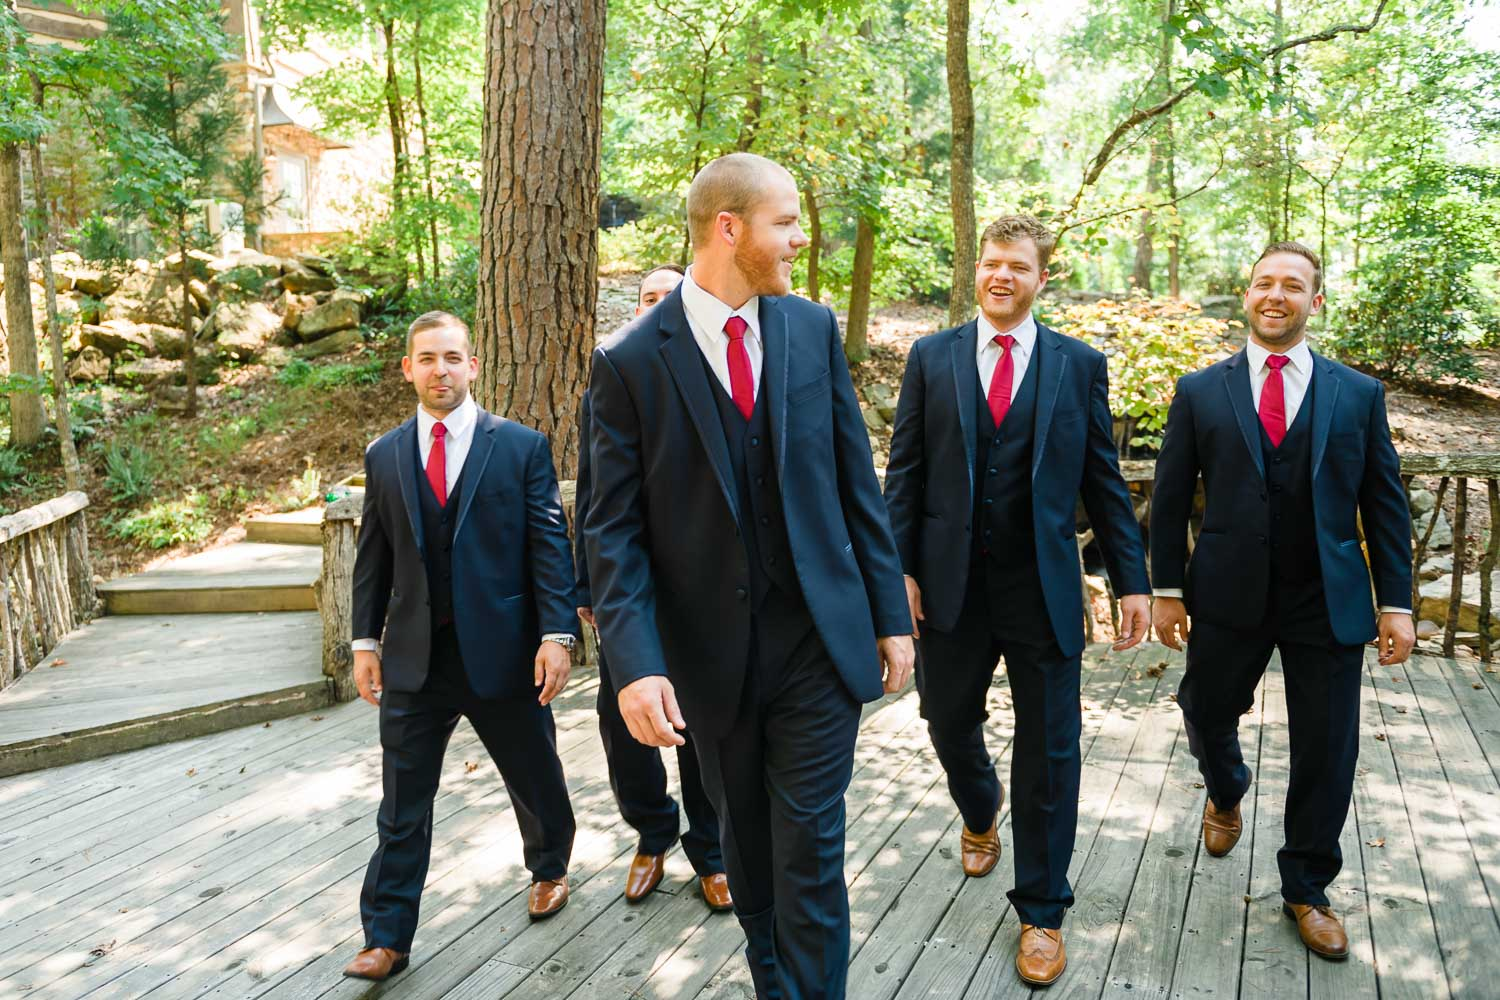 groom and groomsmen in dark suits walking at Indigo Falls venue in GA